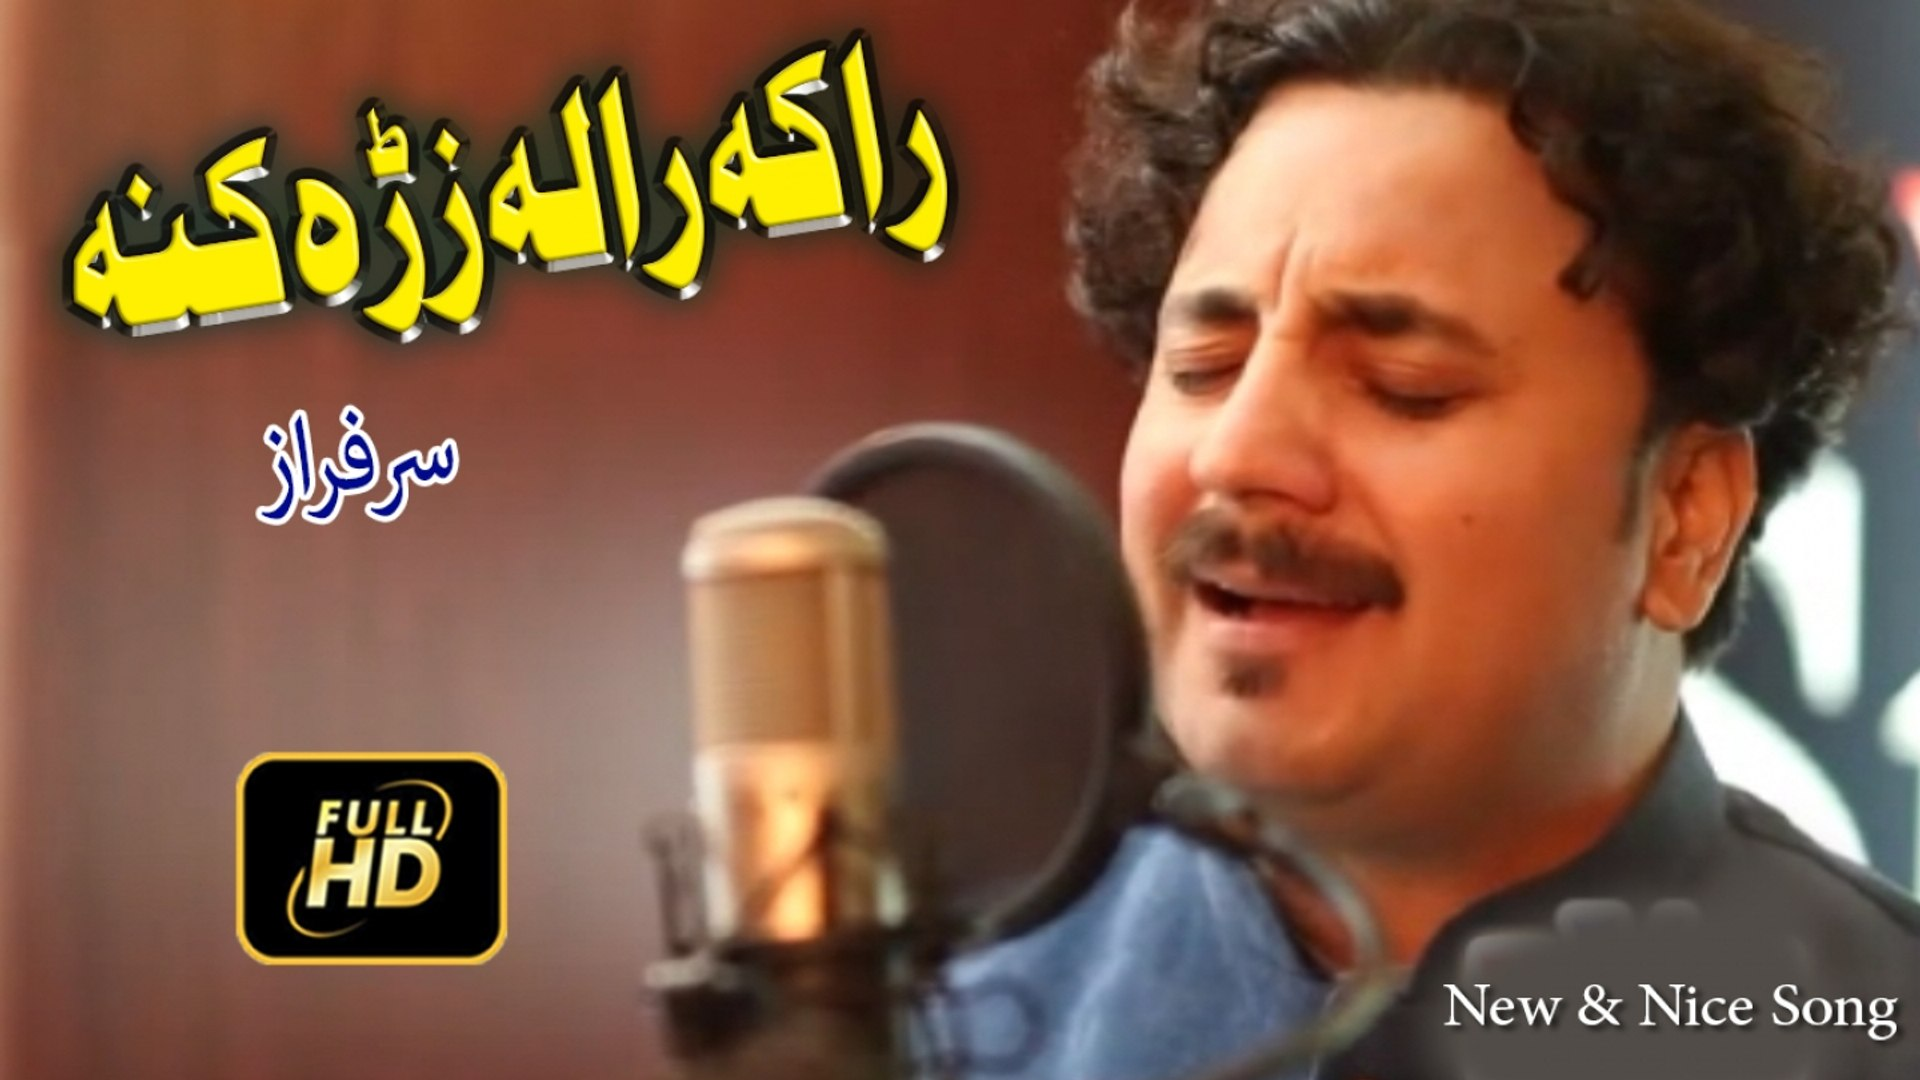 Sarfaraz Pashto New HD song - Raka Rala Zre kana